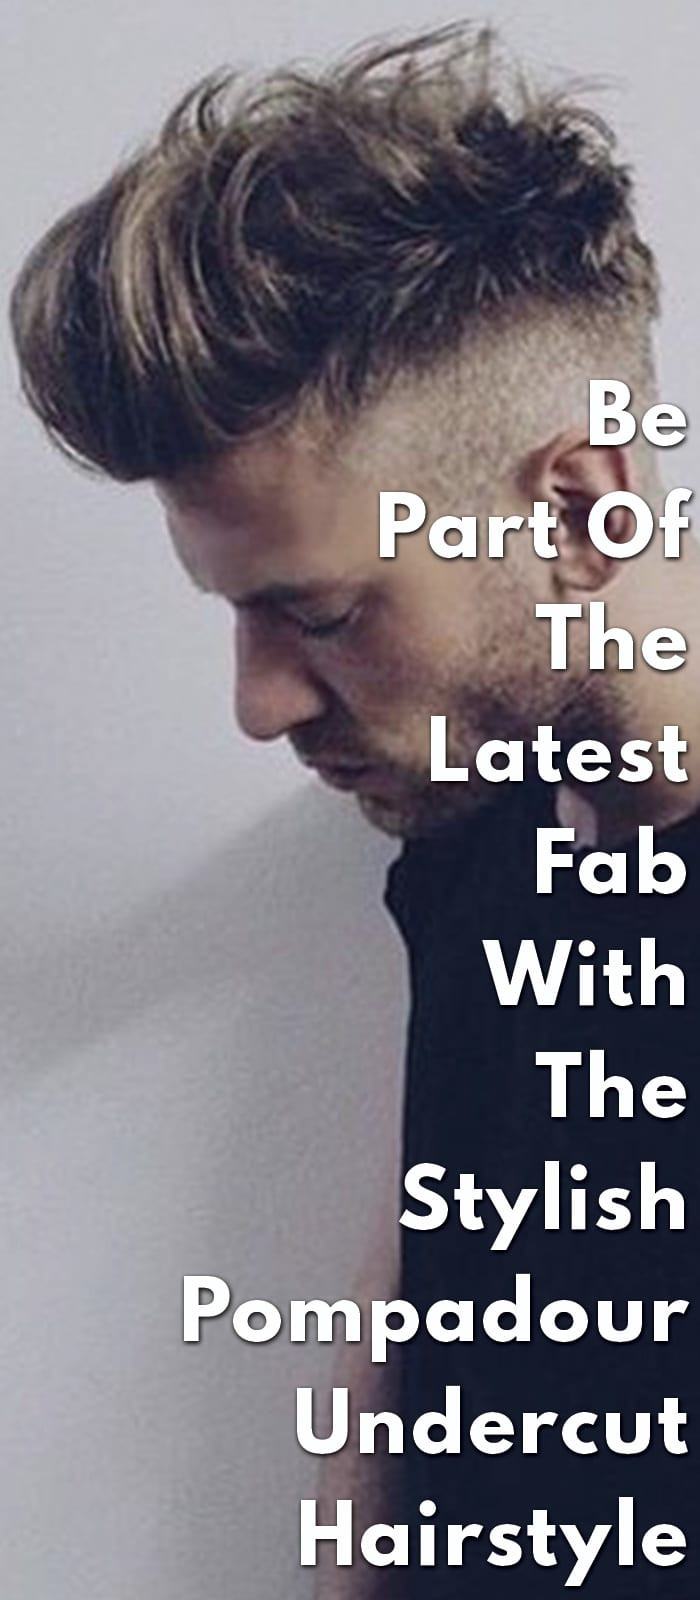 The Latest Fab - The Pompadour Undercut Hairstyle